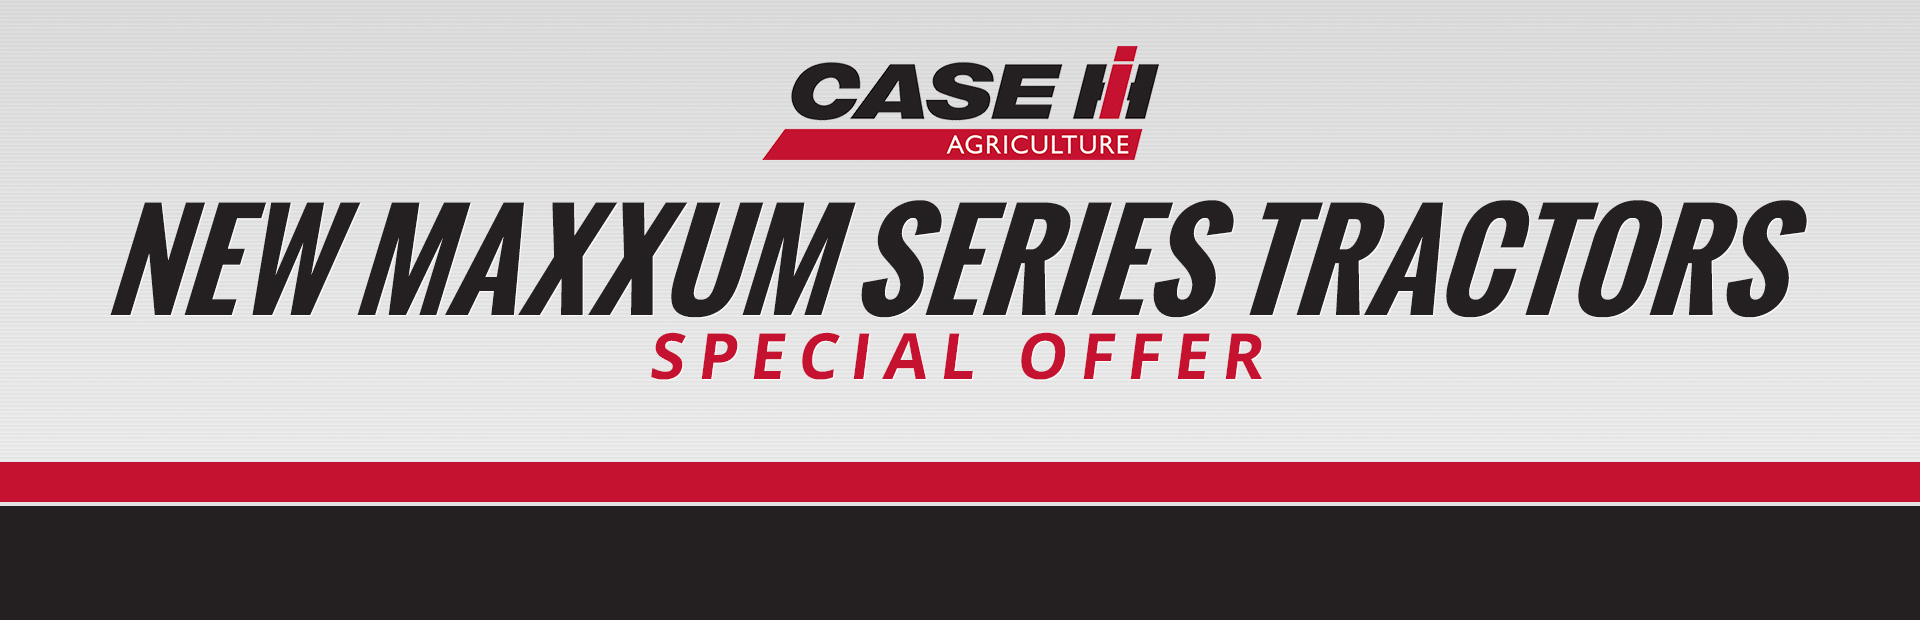 Case IH: New Maxxum Series Tractors Special Offer